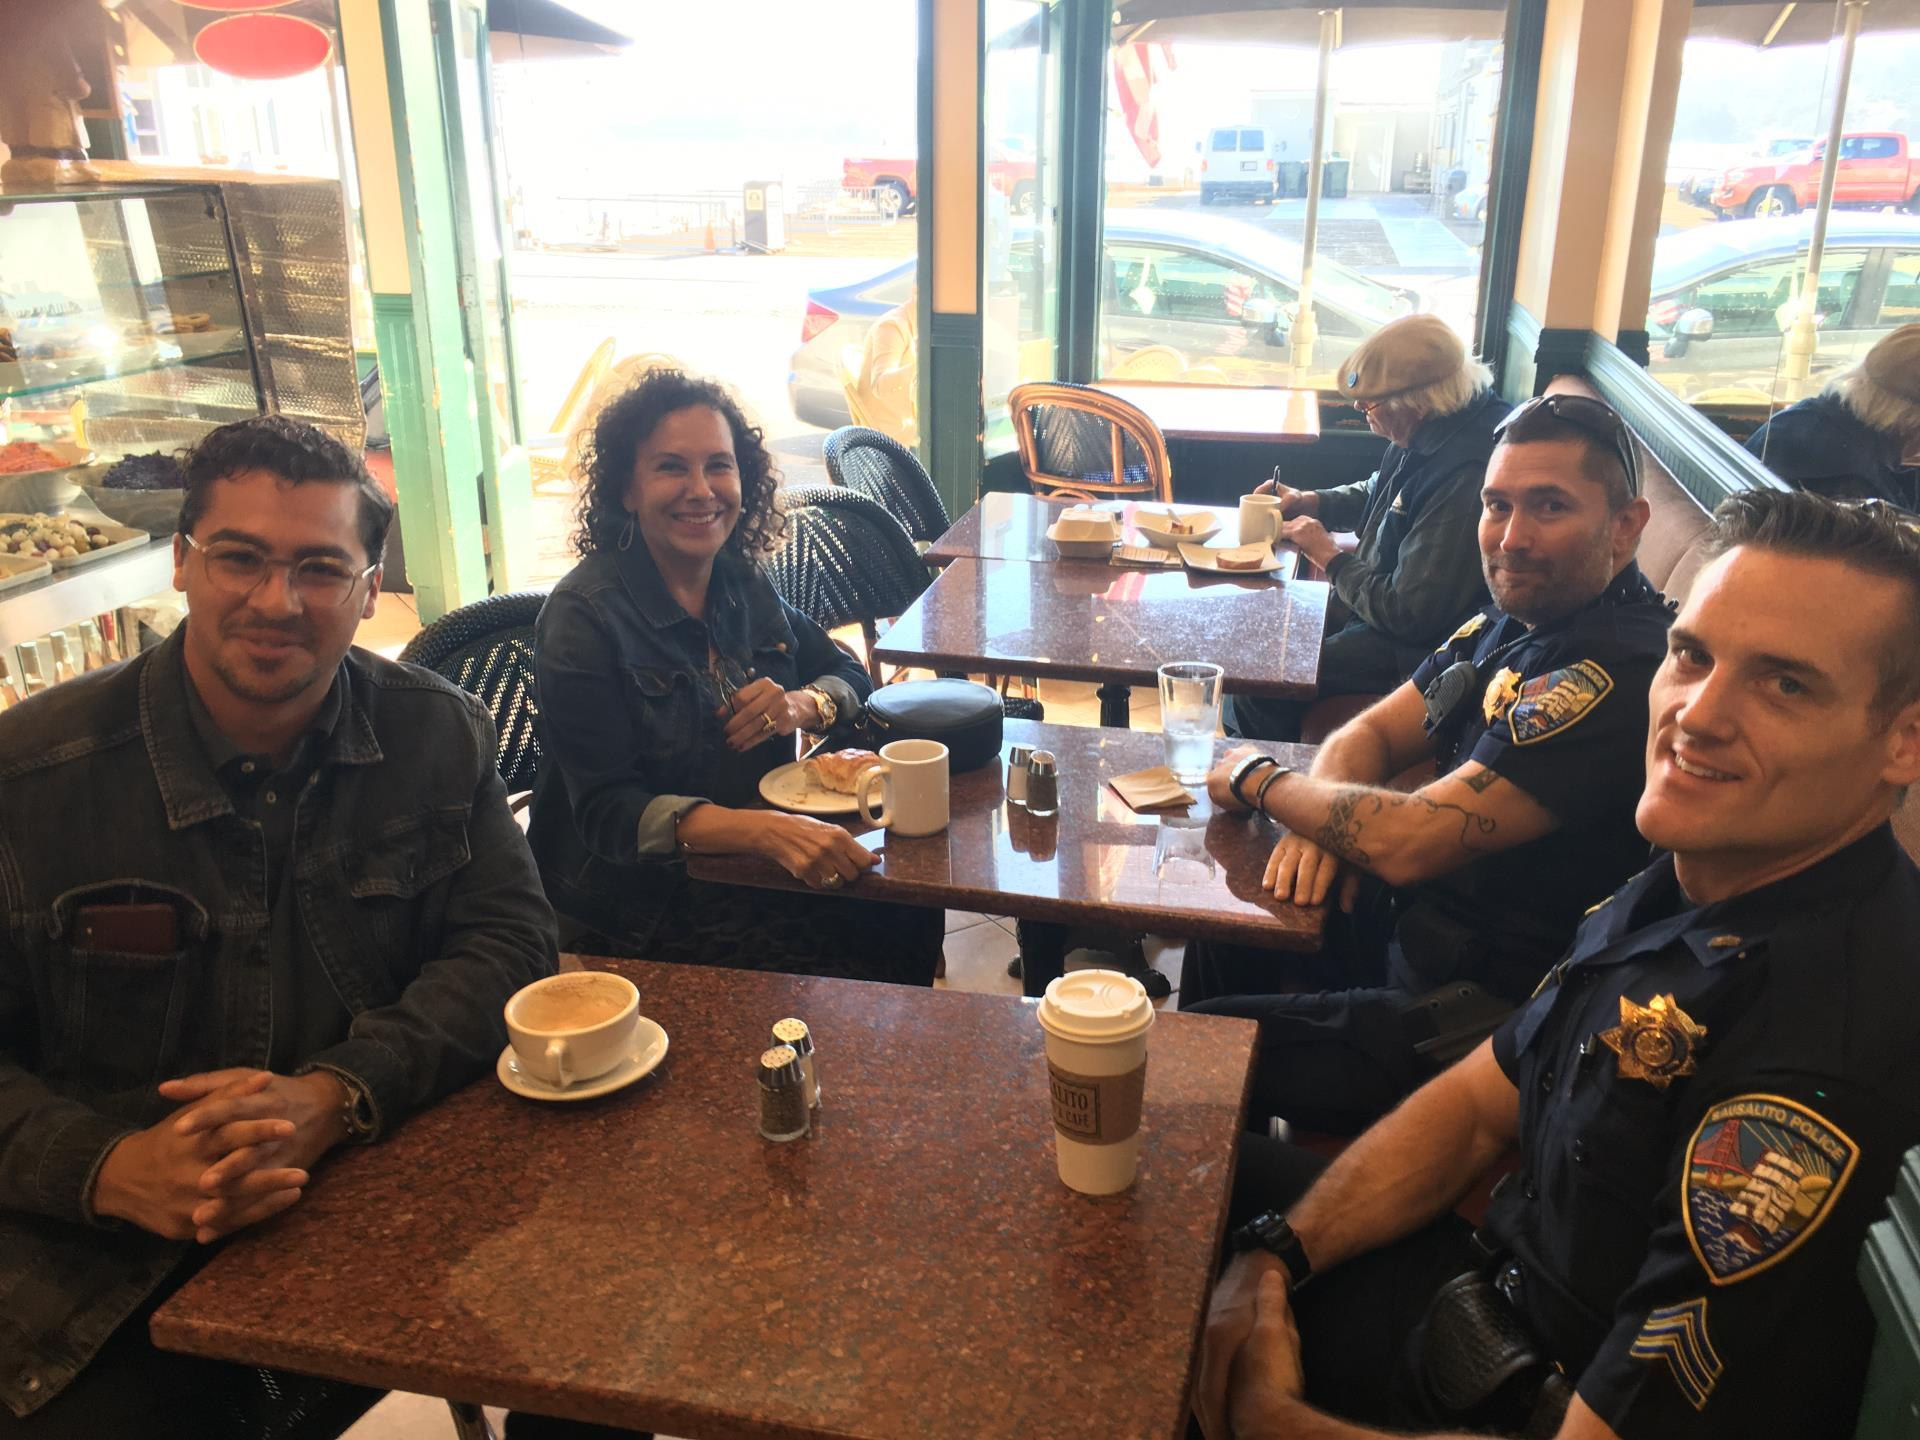 2019-10-02-coffee-with-a-cop-sausalito-bakery-01